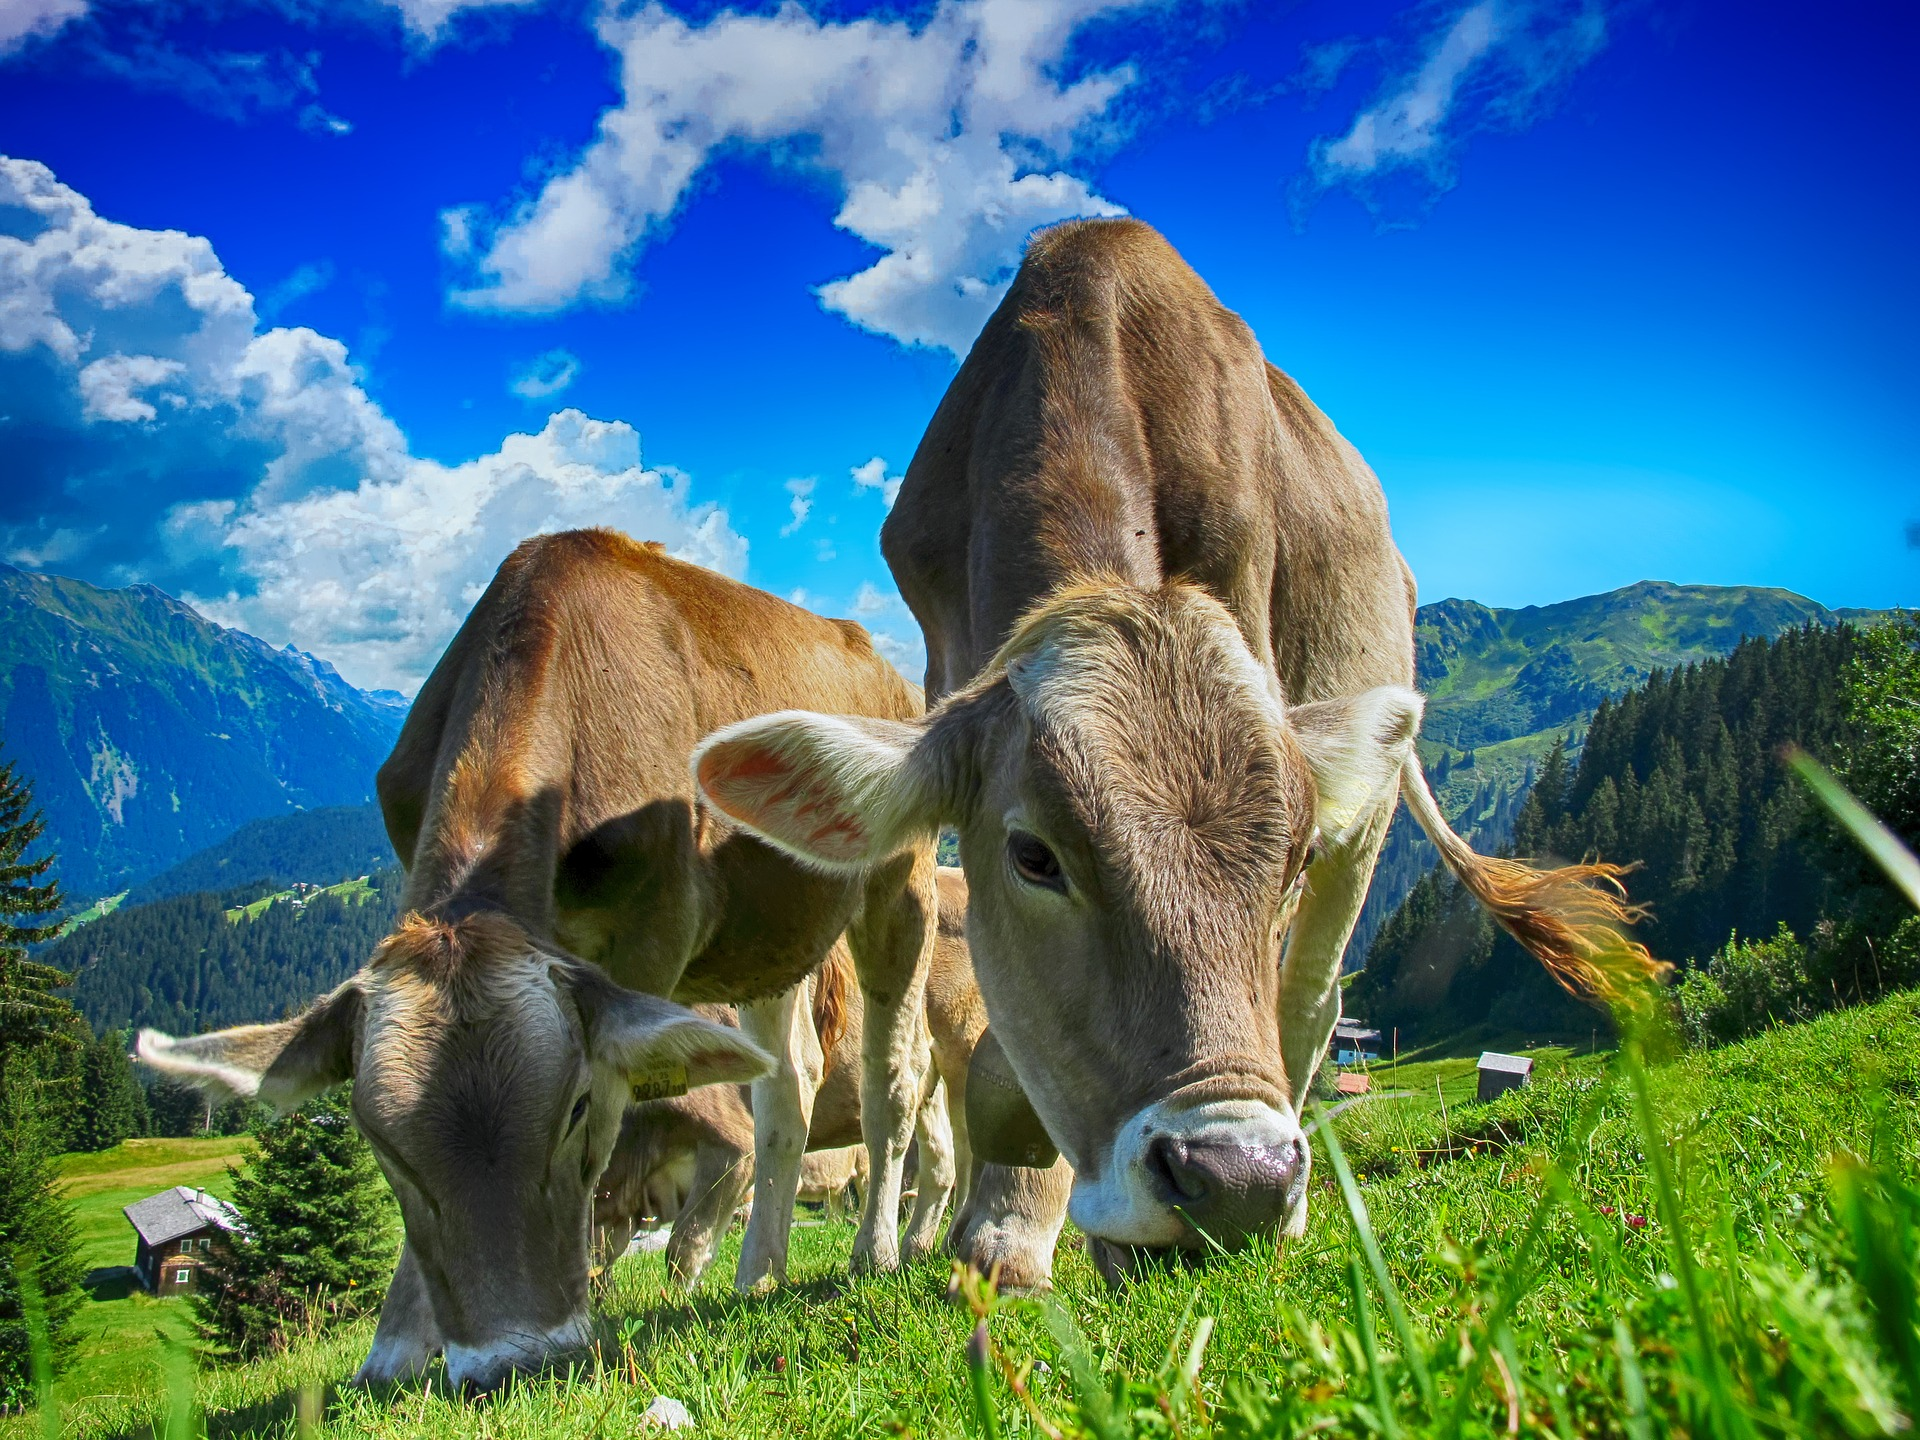 302,050 cows in low earth orbit - and other ways to quantify data